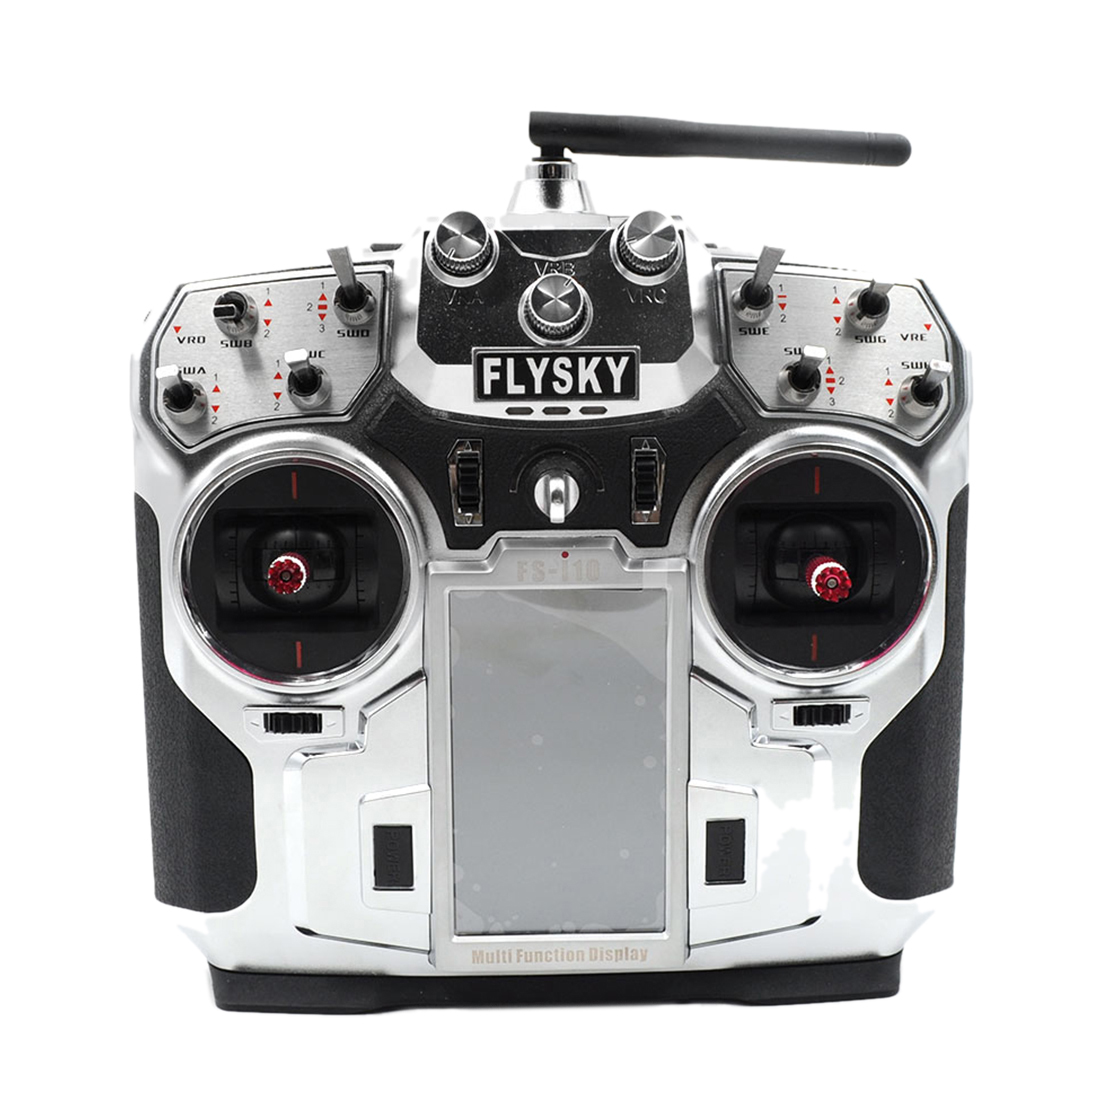 2 4G Flysky FS T6 6CH LCD RC Model Remote Control Compatible with  Multi-axis - Black Silver Left Right Hand Accelerator